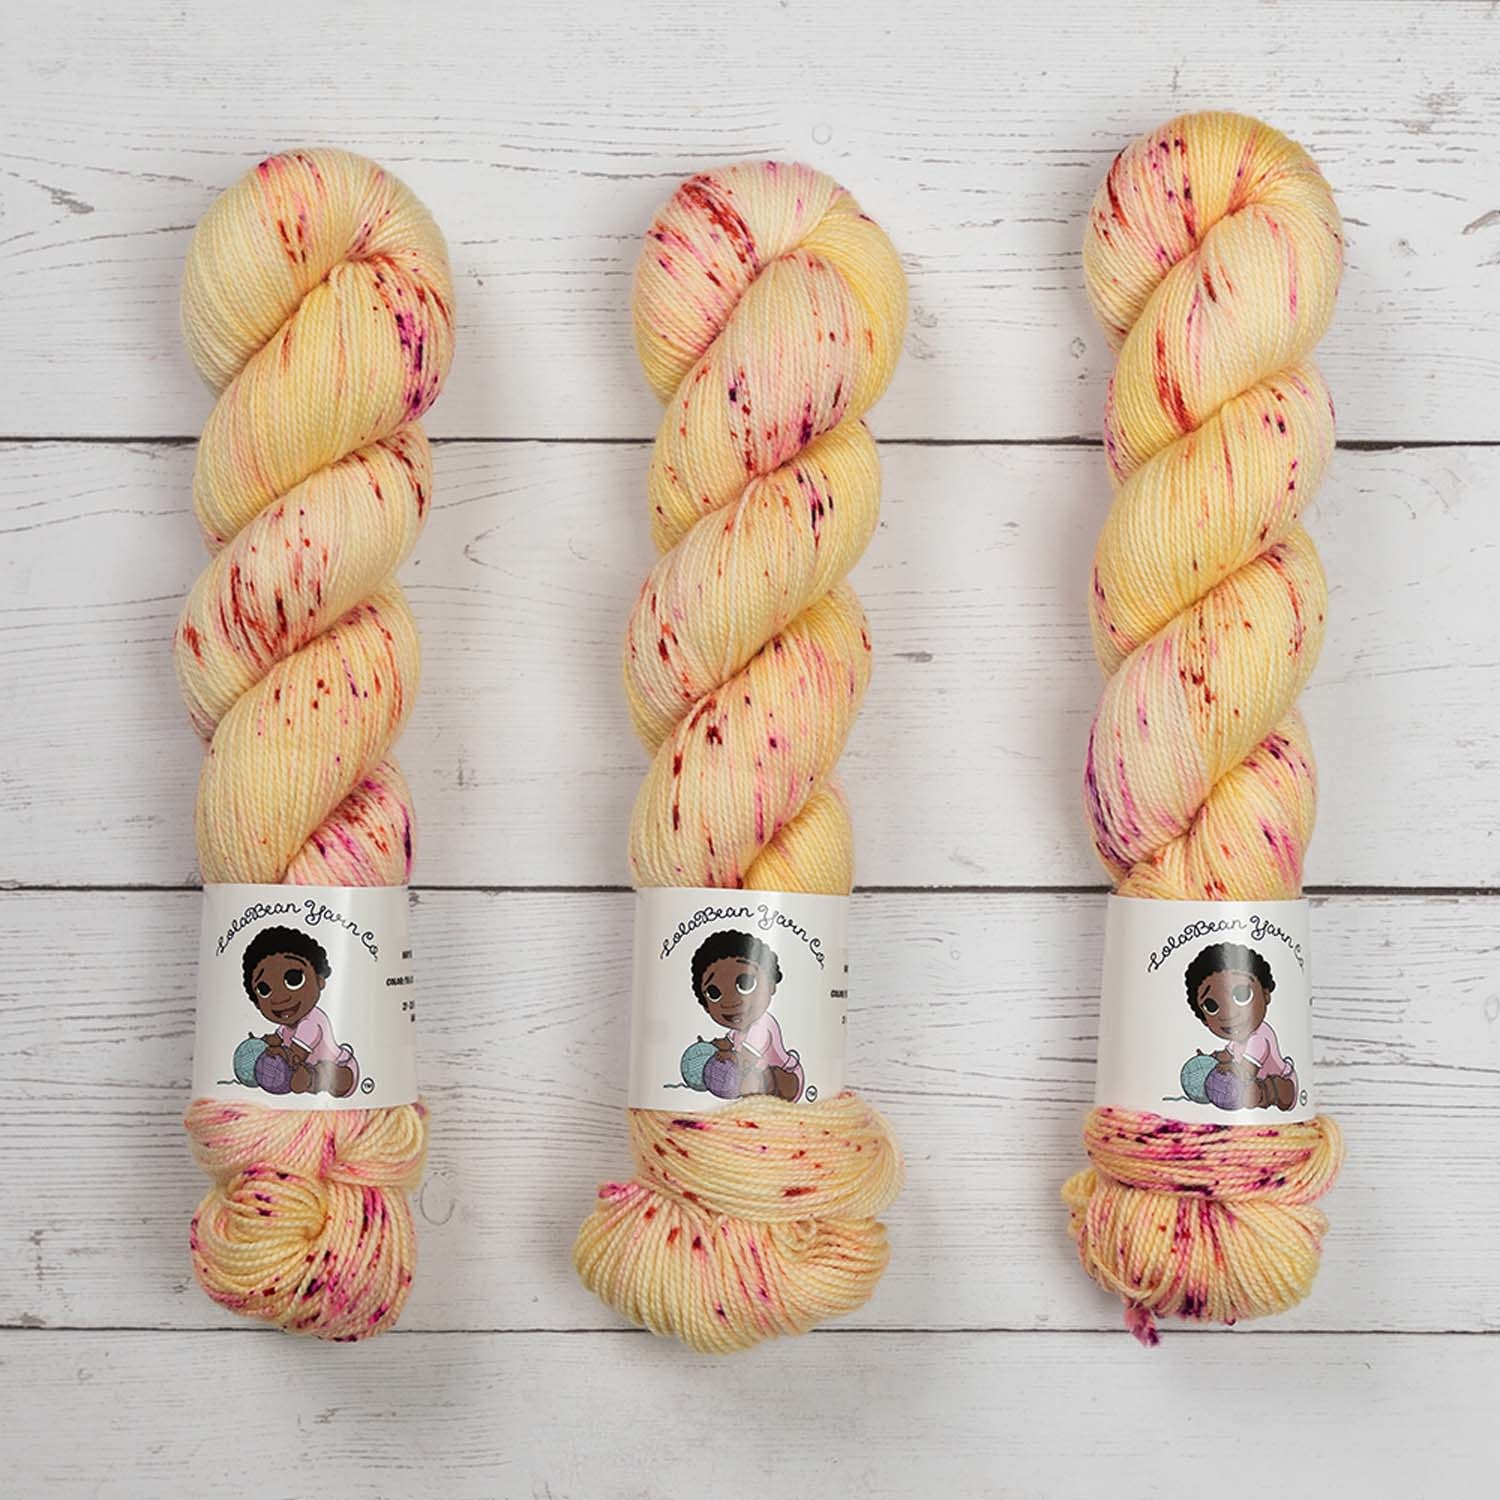 LOLABEAN YARN CO NAVY BEAN - I'M A LITTLE LAD WHO LOVES BERRIES & CREAM